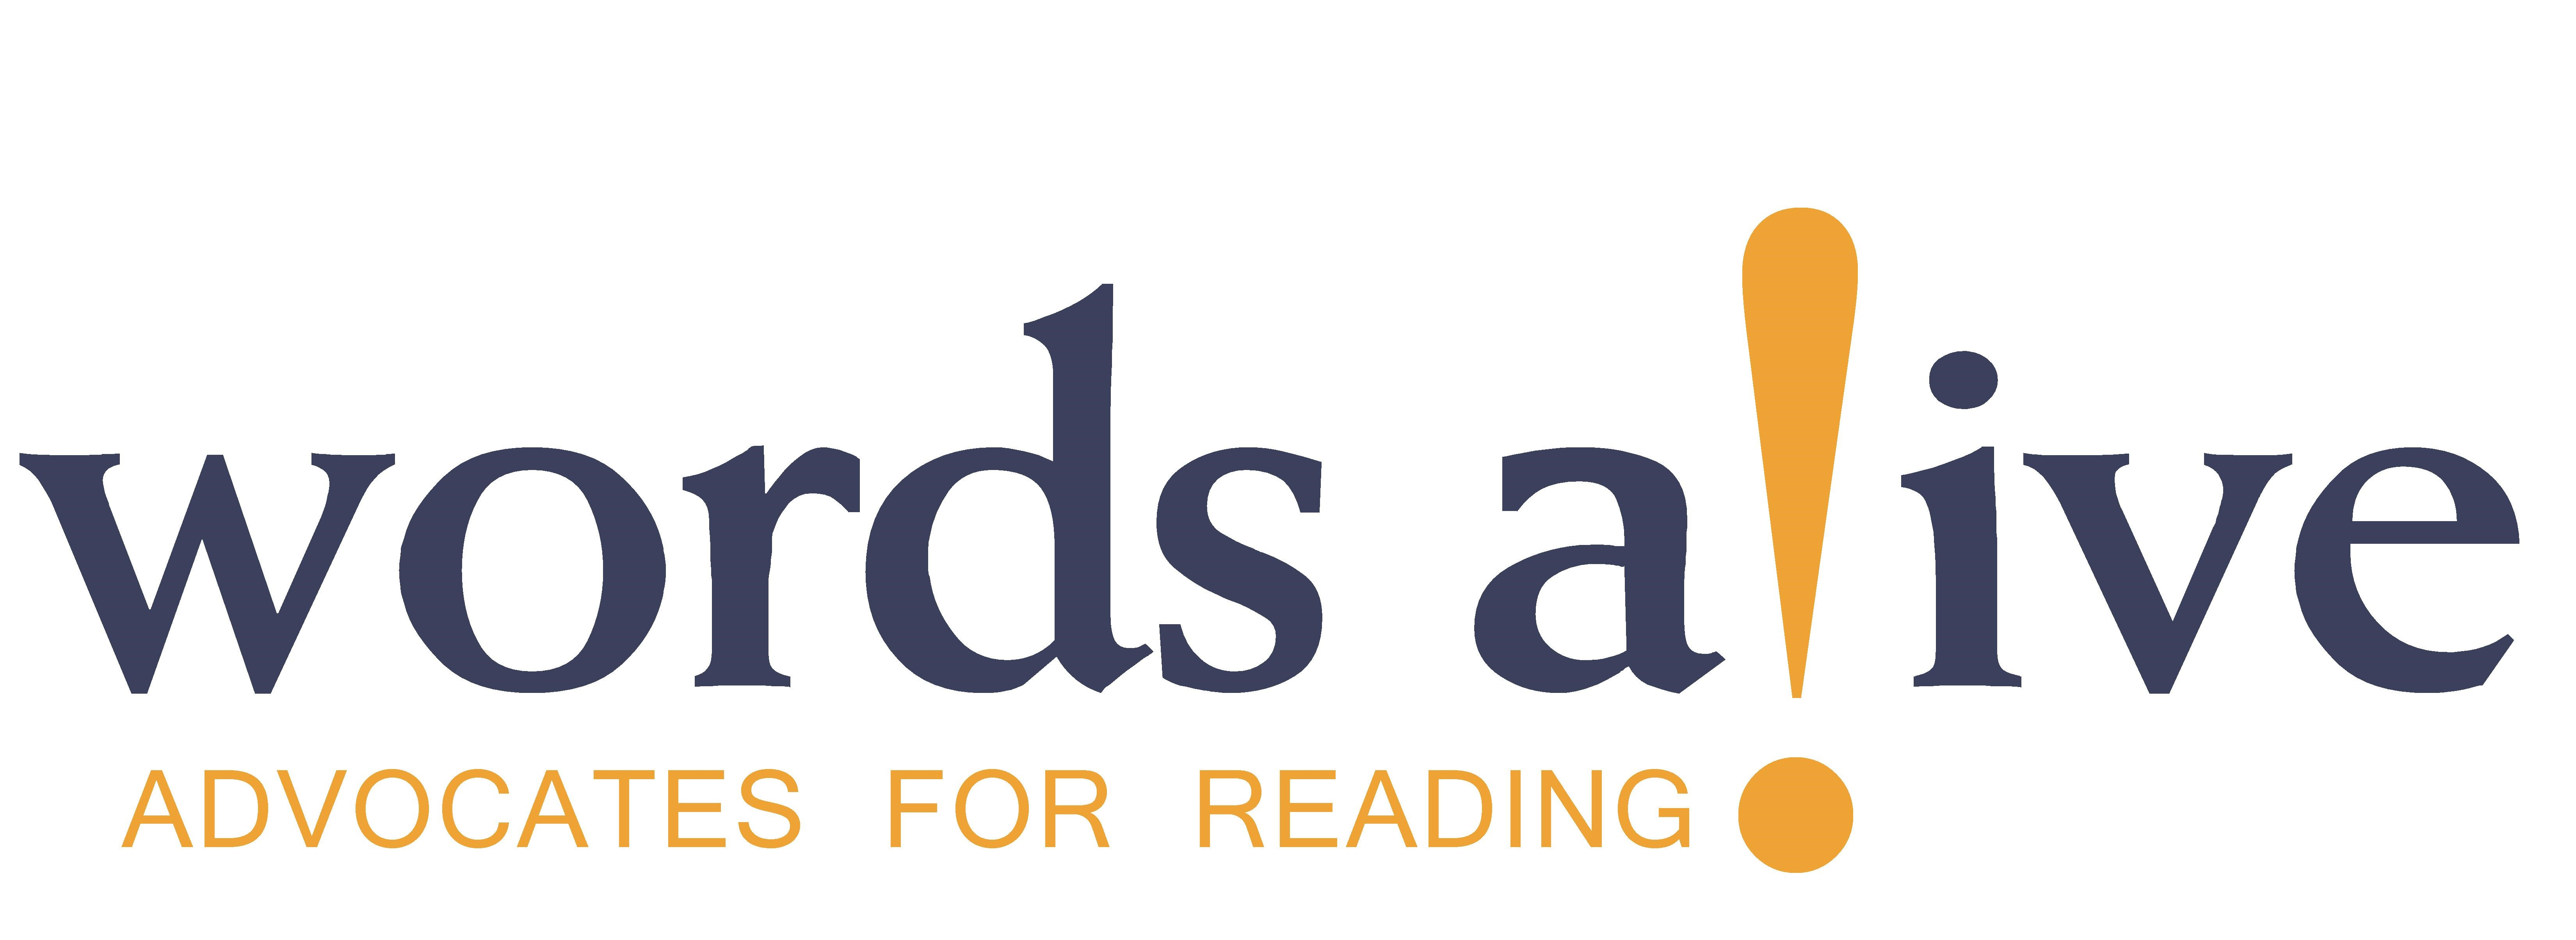 Words Alive logo